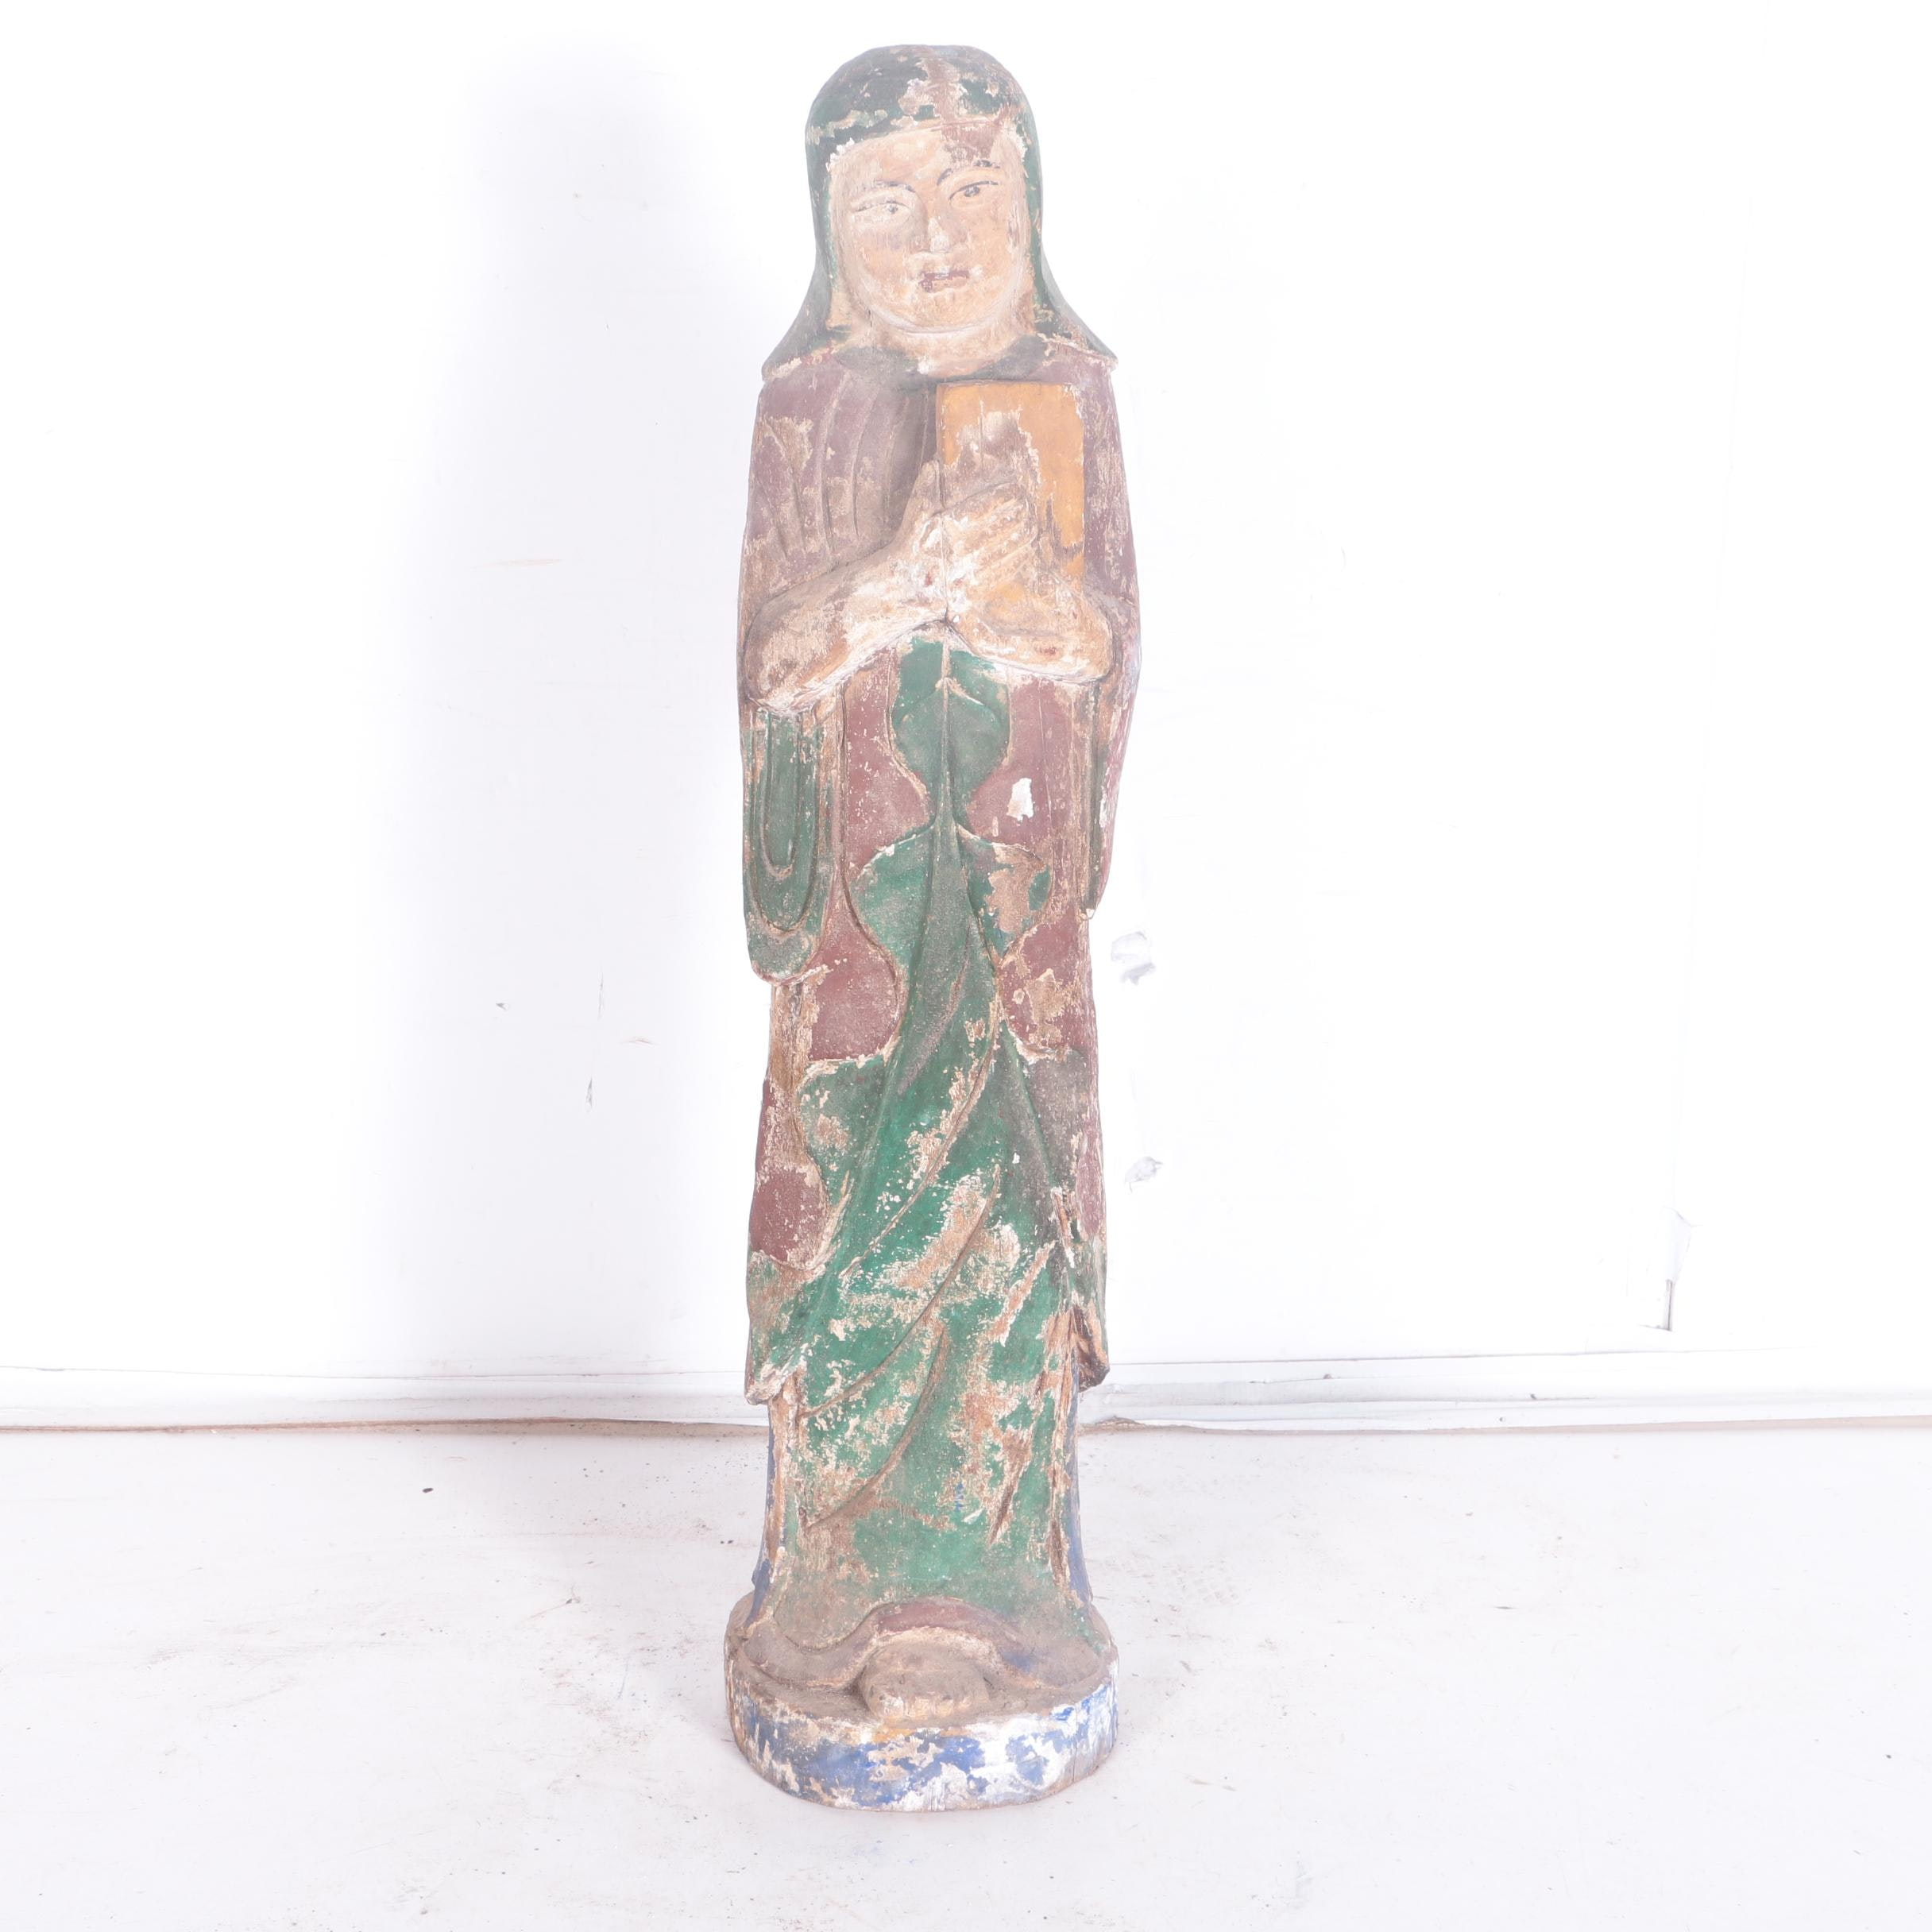 East Asian Style Carved Wooden Statuette of a Woman